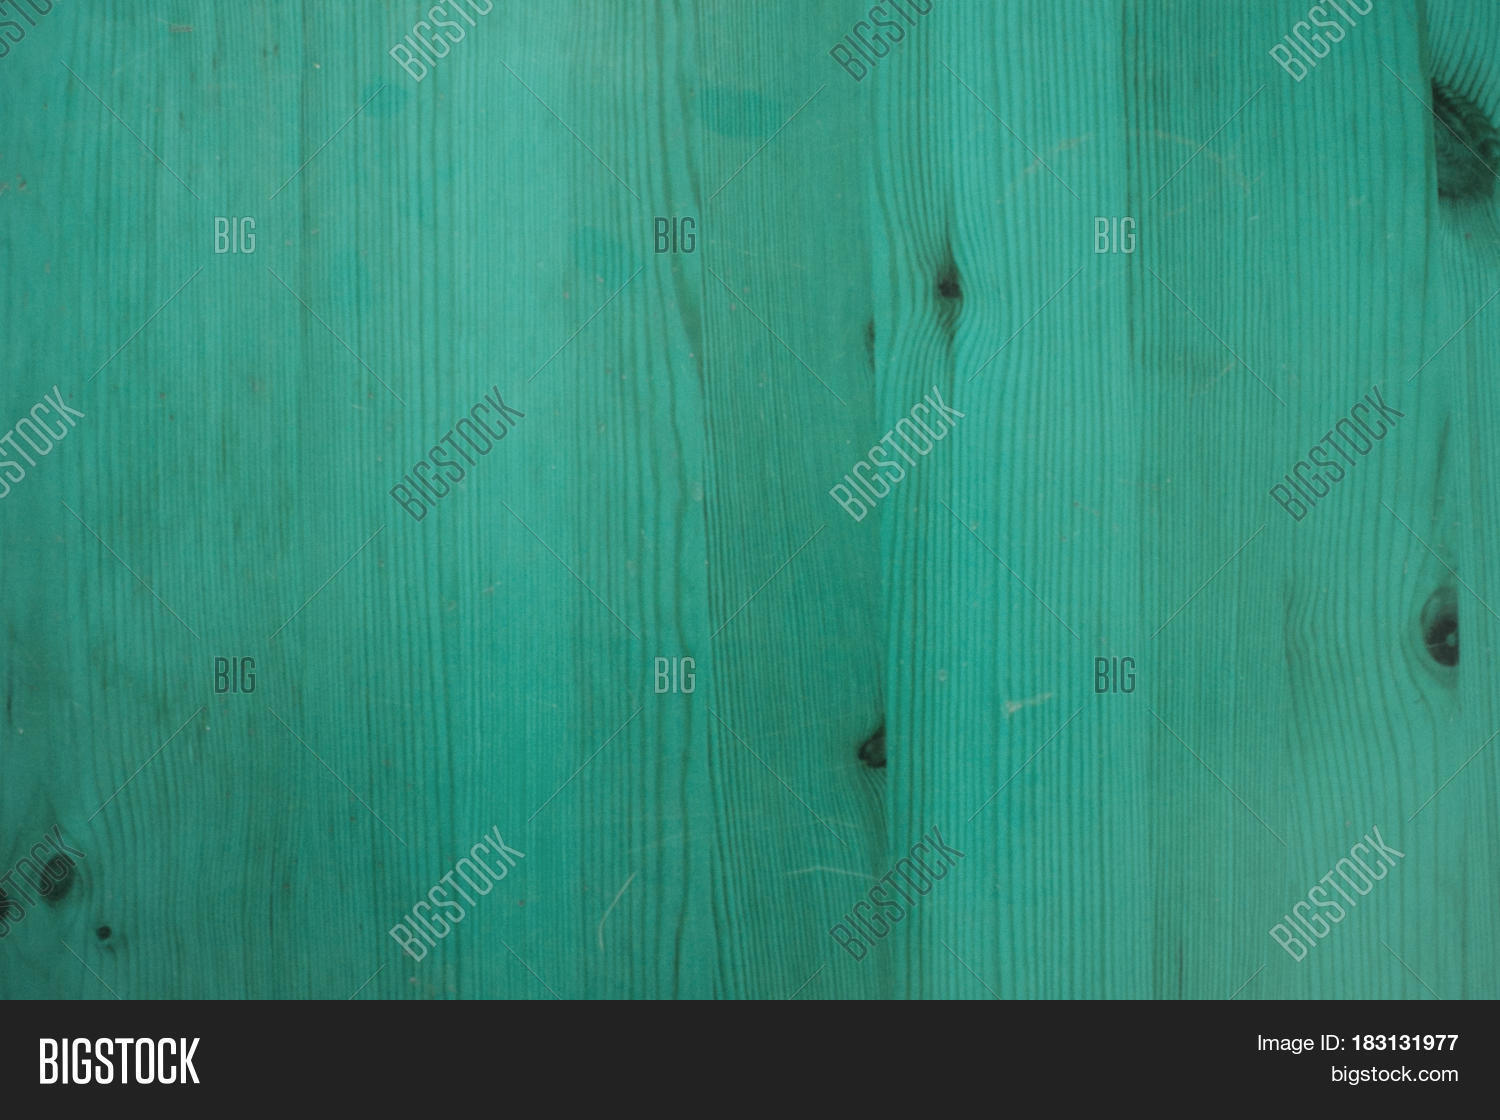 Turquoise Painted Wood Background Texture Of Rustic In Wooden